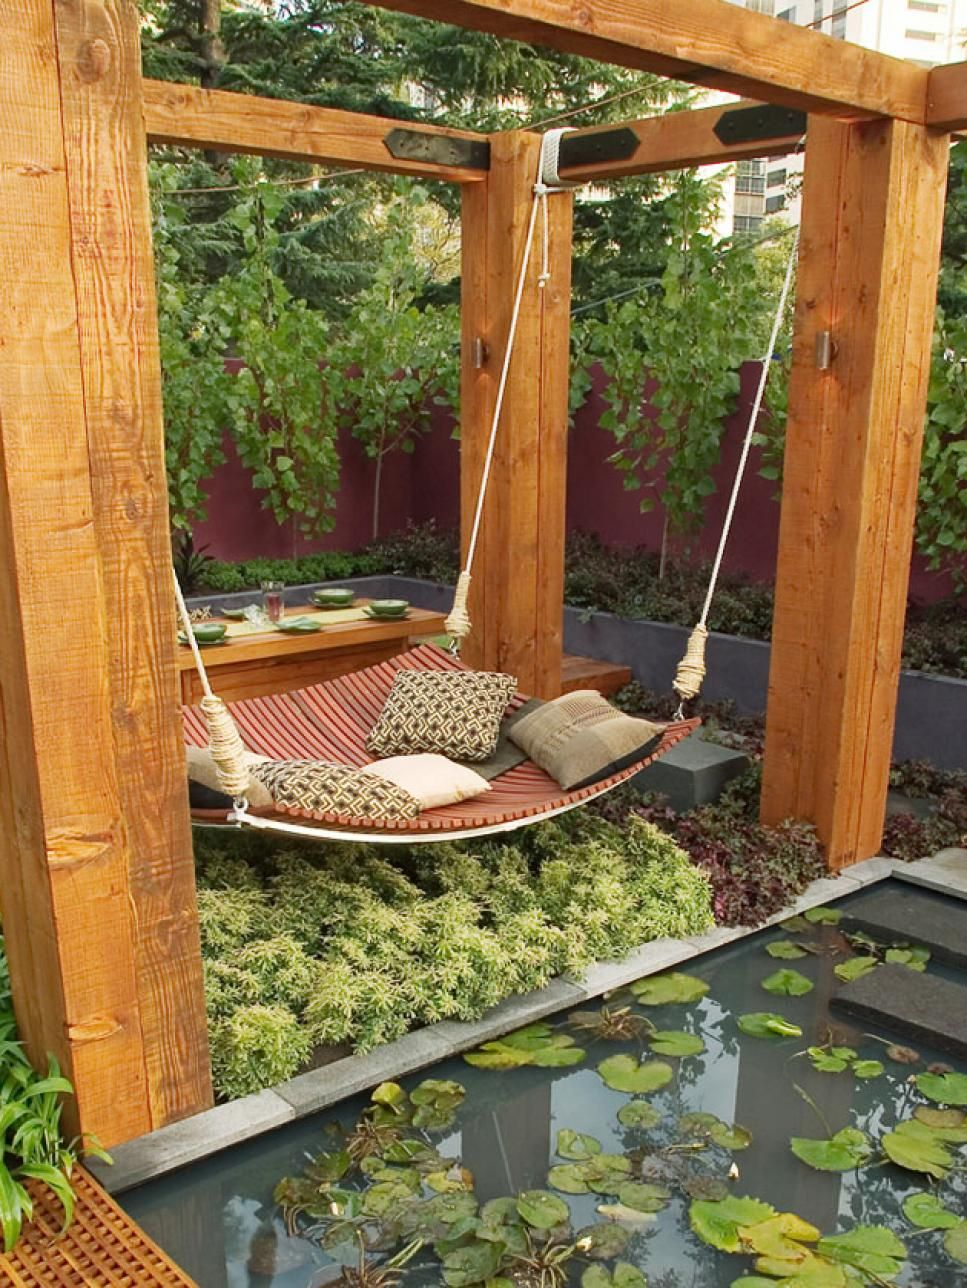 Asian-Inspired Landscape Design | Jamie durie, Lotus design and Backyard